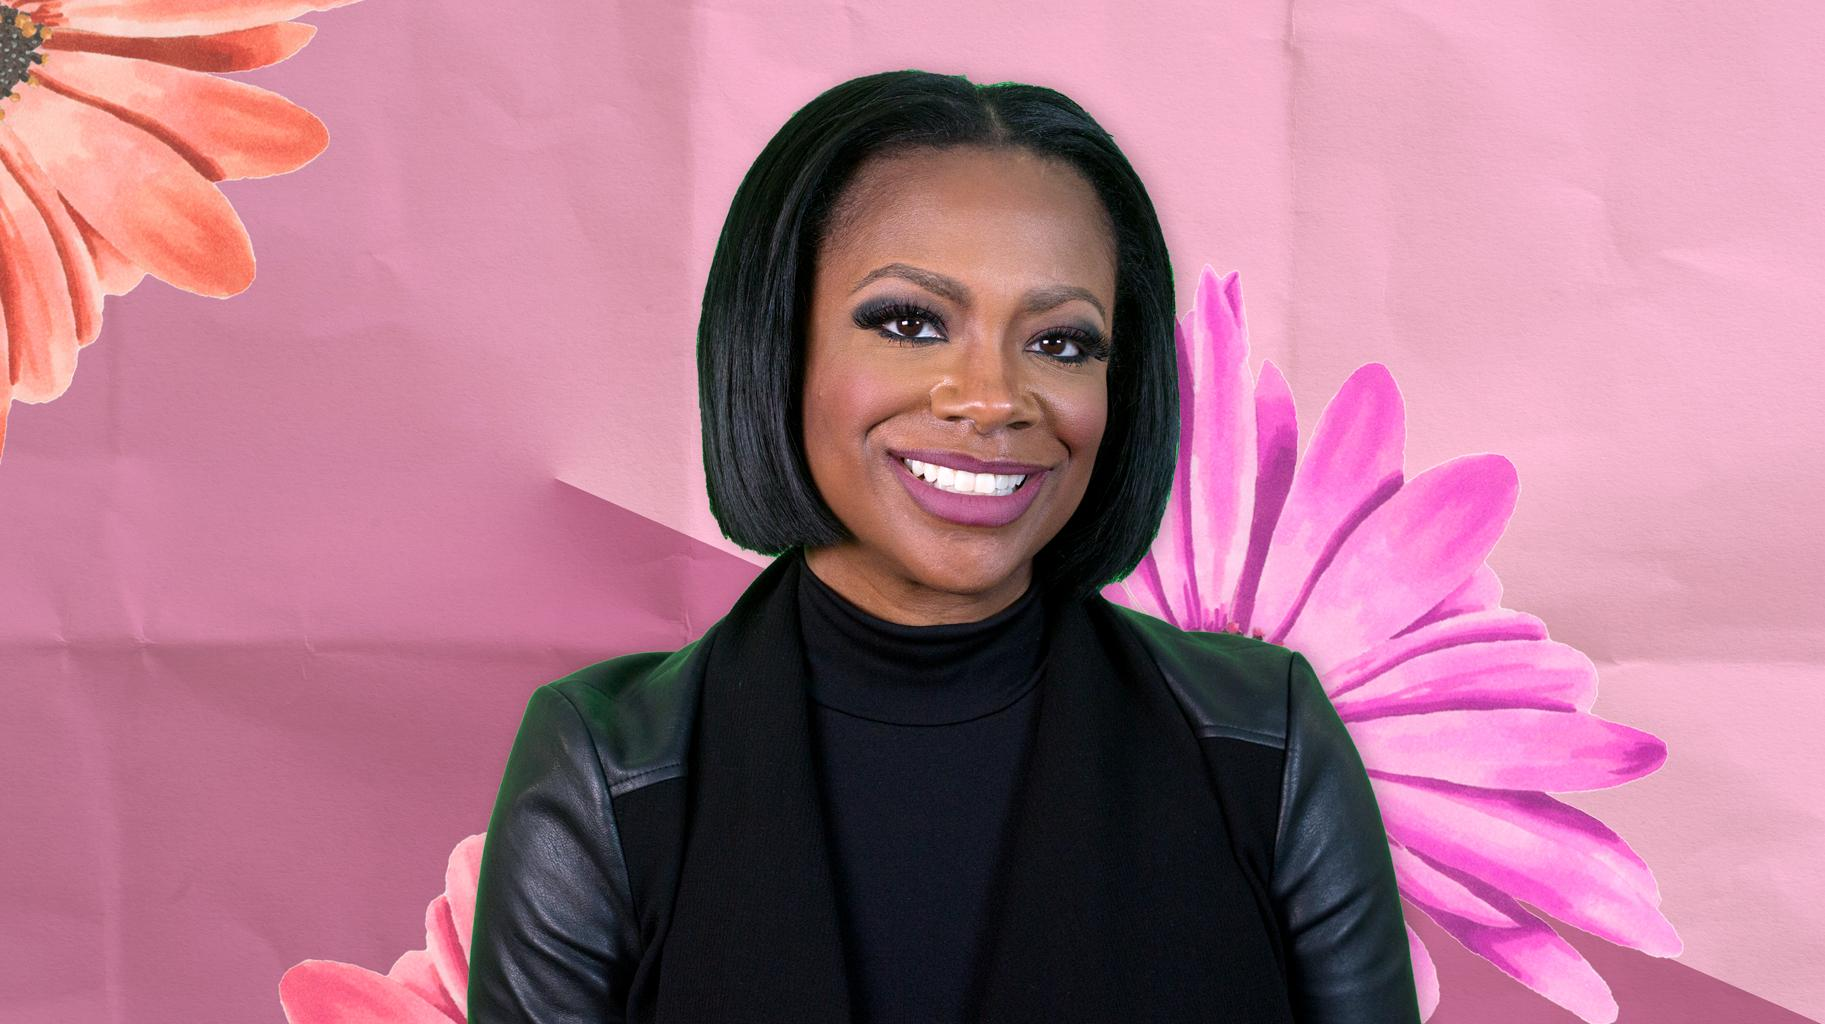 Kandi Burruss Is Already Getting Ready For The Holiday Season - Check Out Her Secret For Getting In Shape